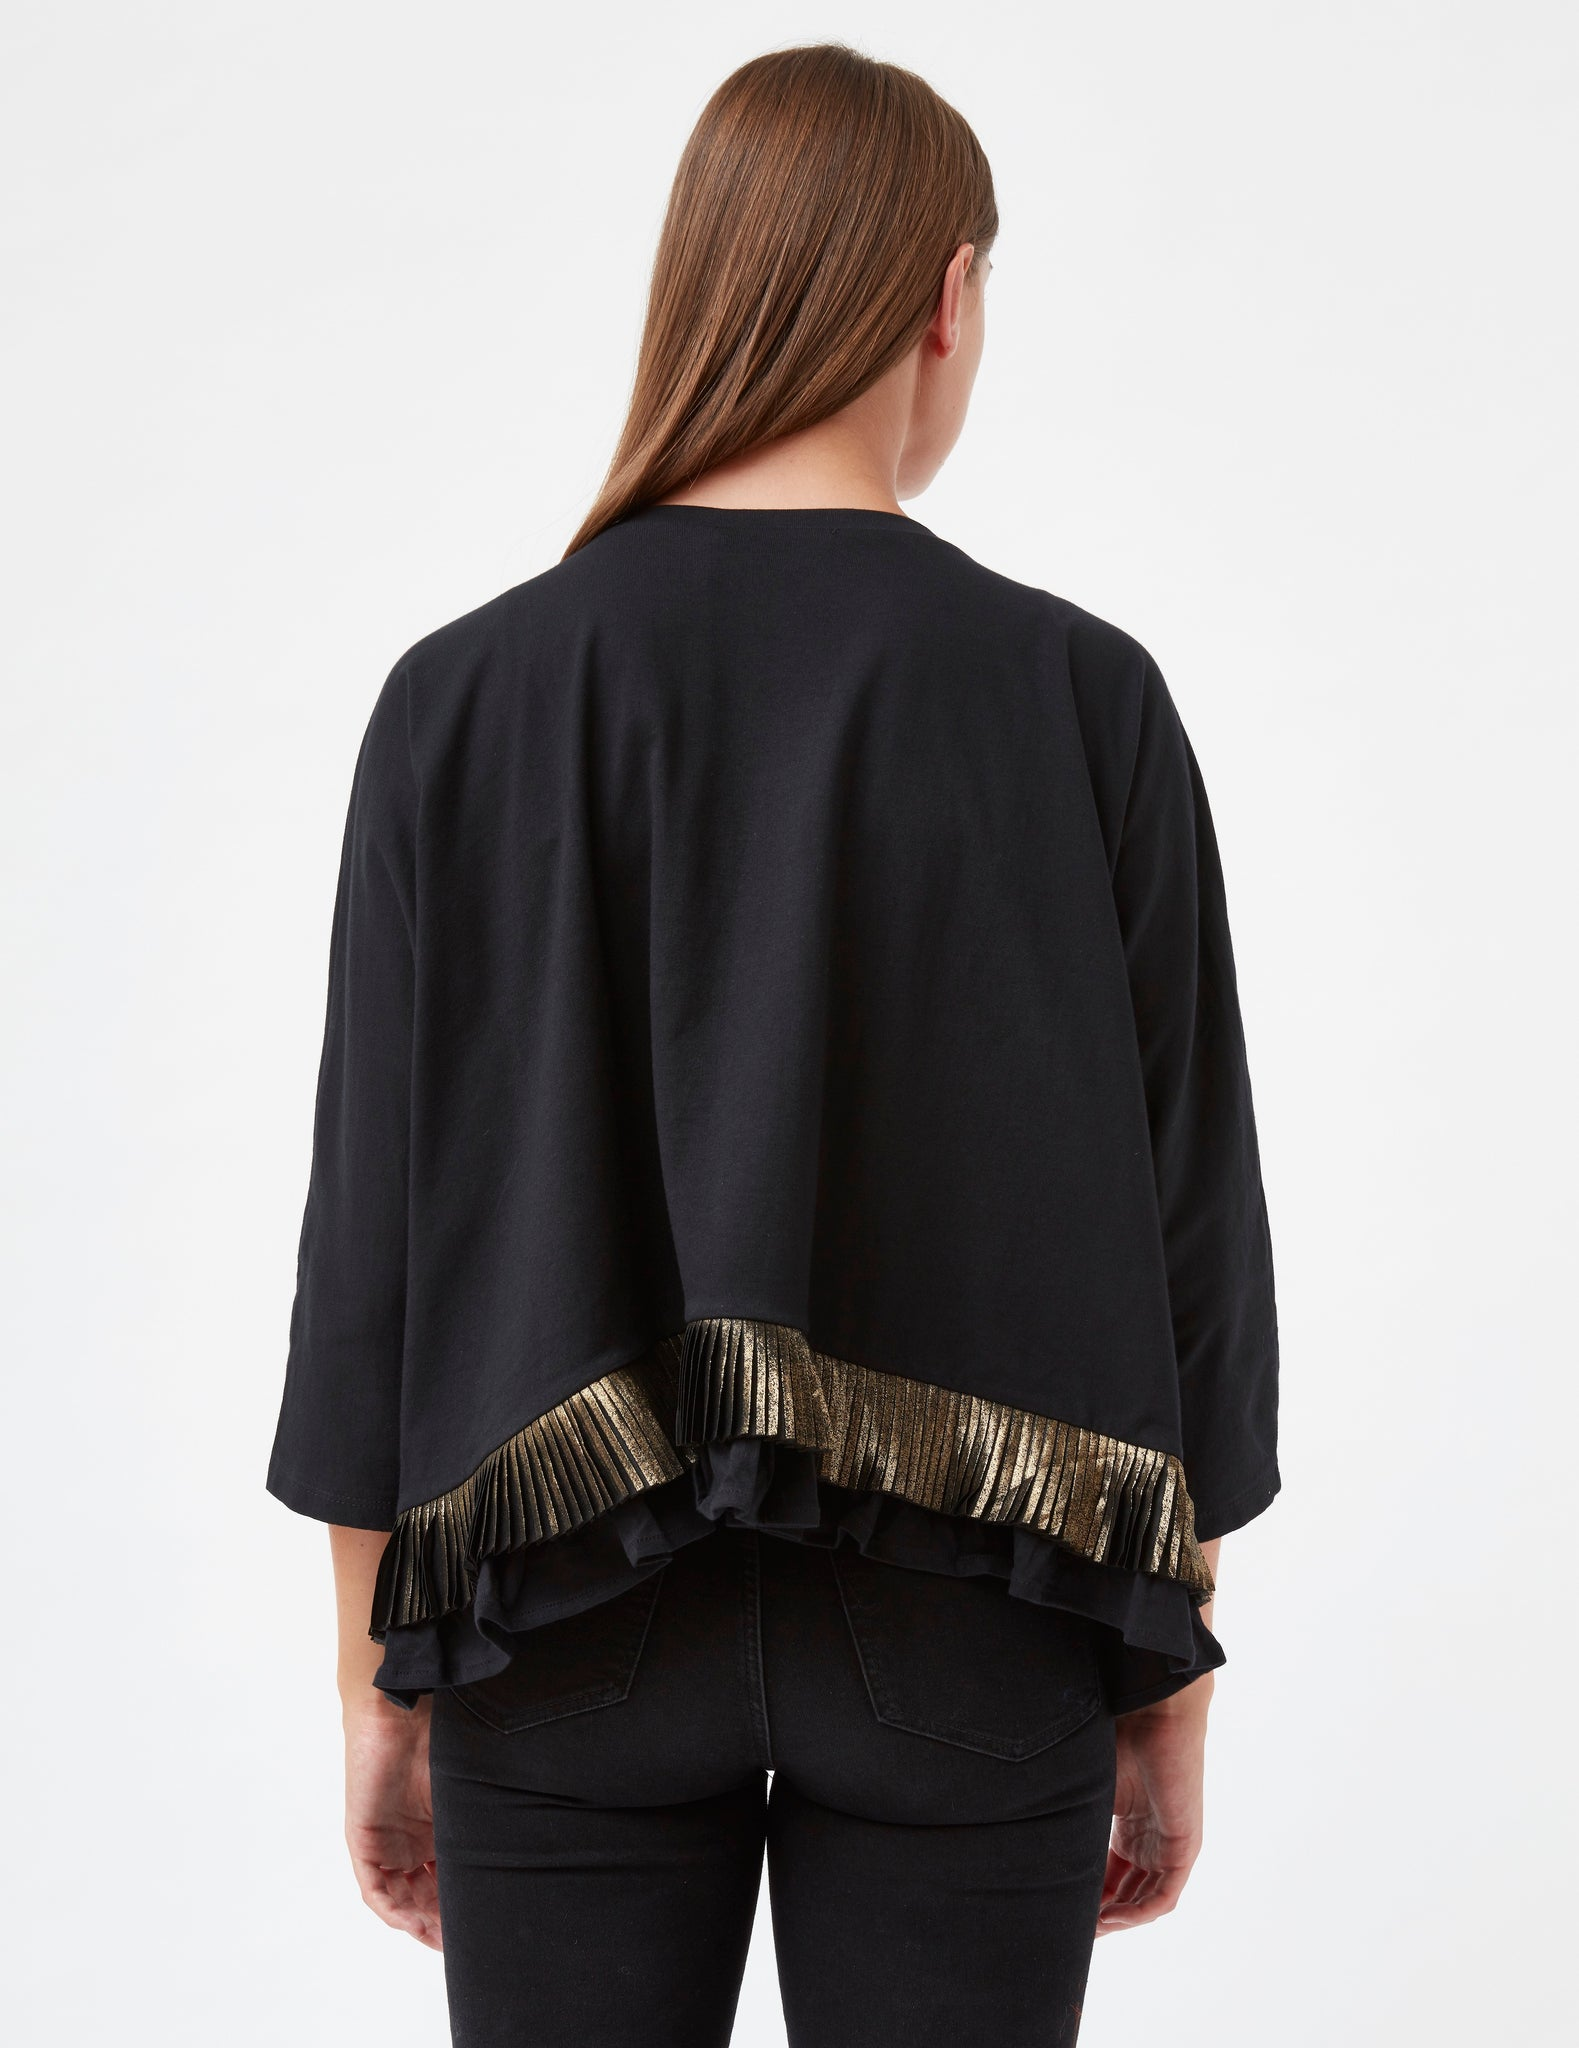 MARVELLOUS AND MISCELLANEOUS - BLATANTLY BOLD FRINGED TOP